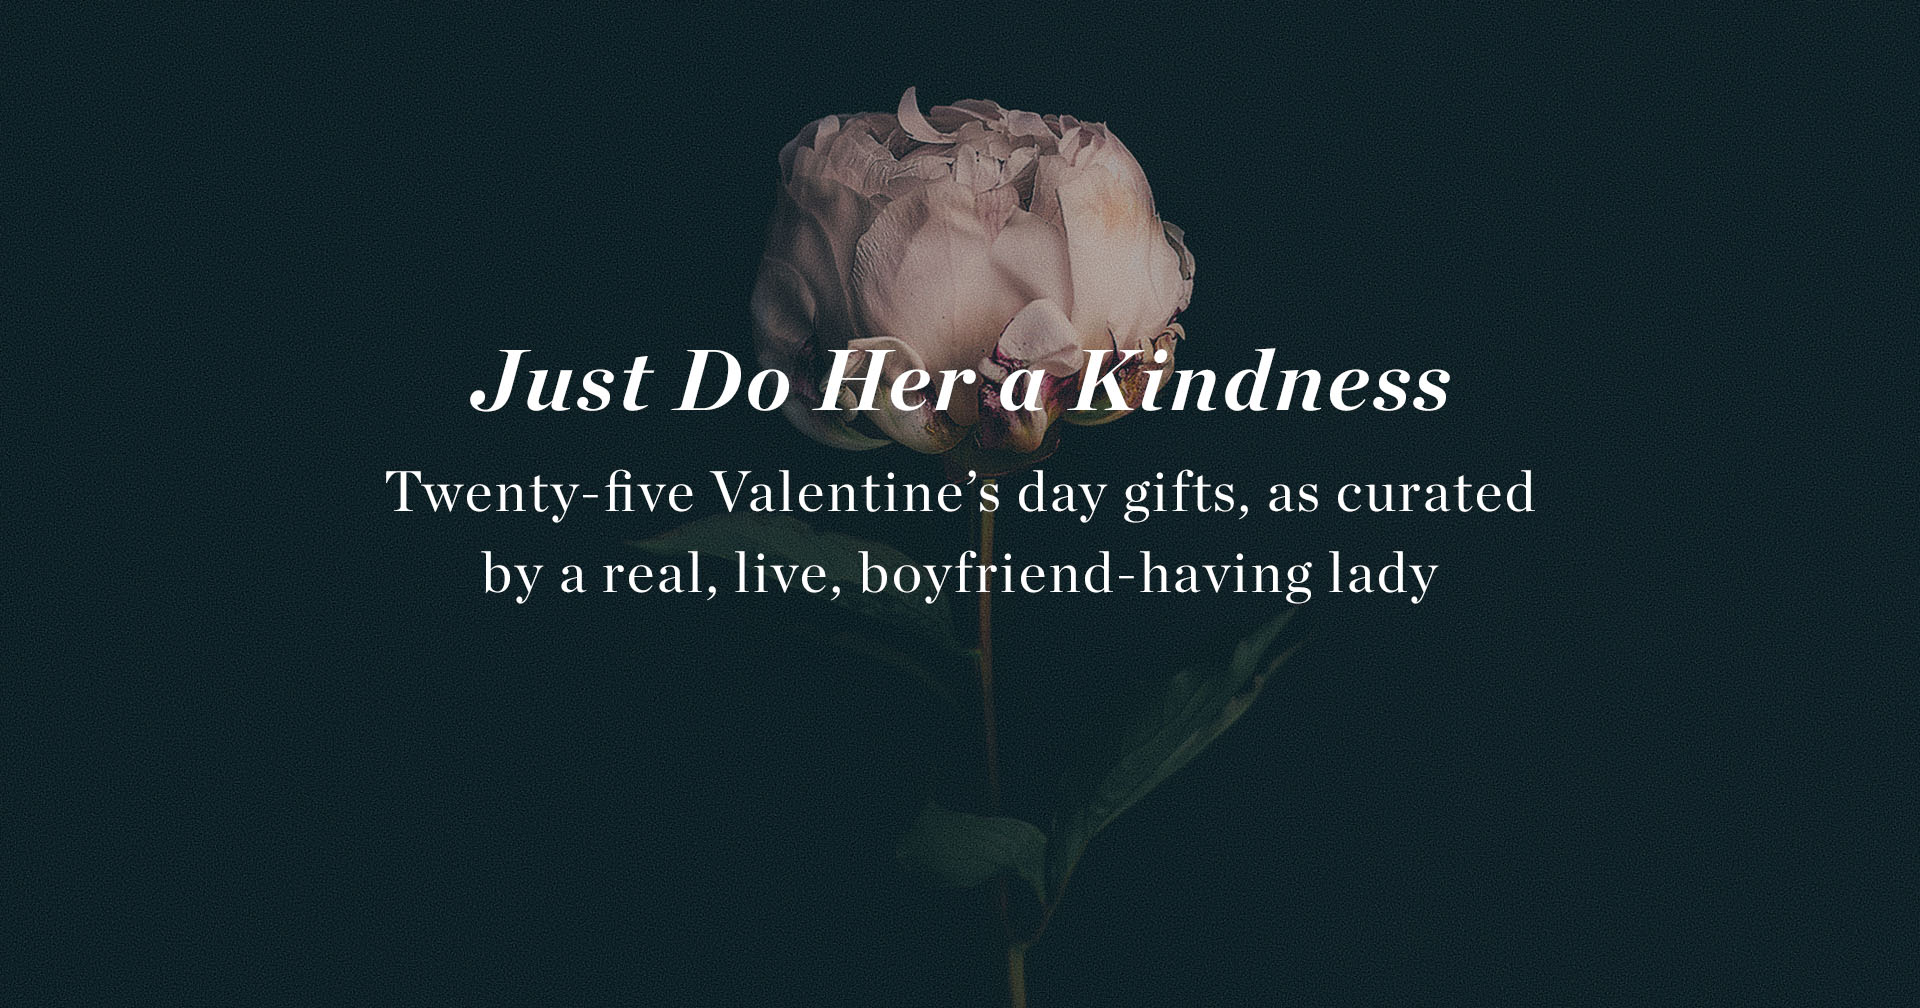 25 Valentine's Day Gifts for Her